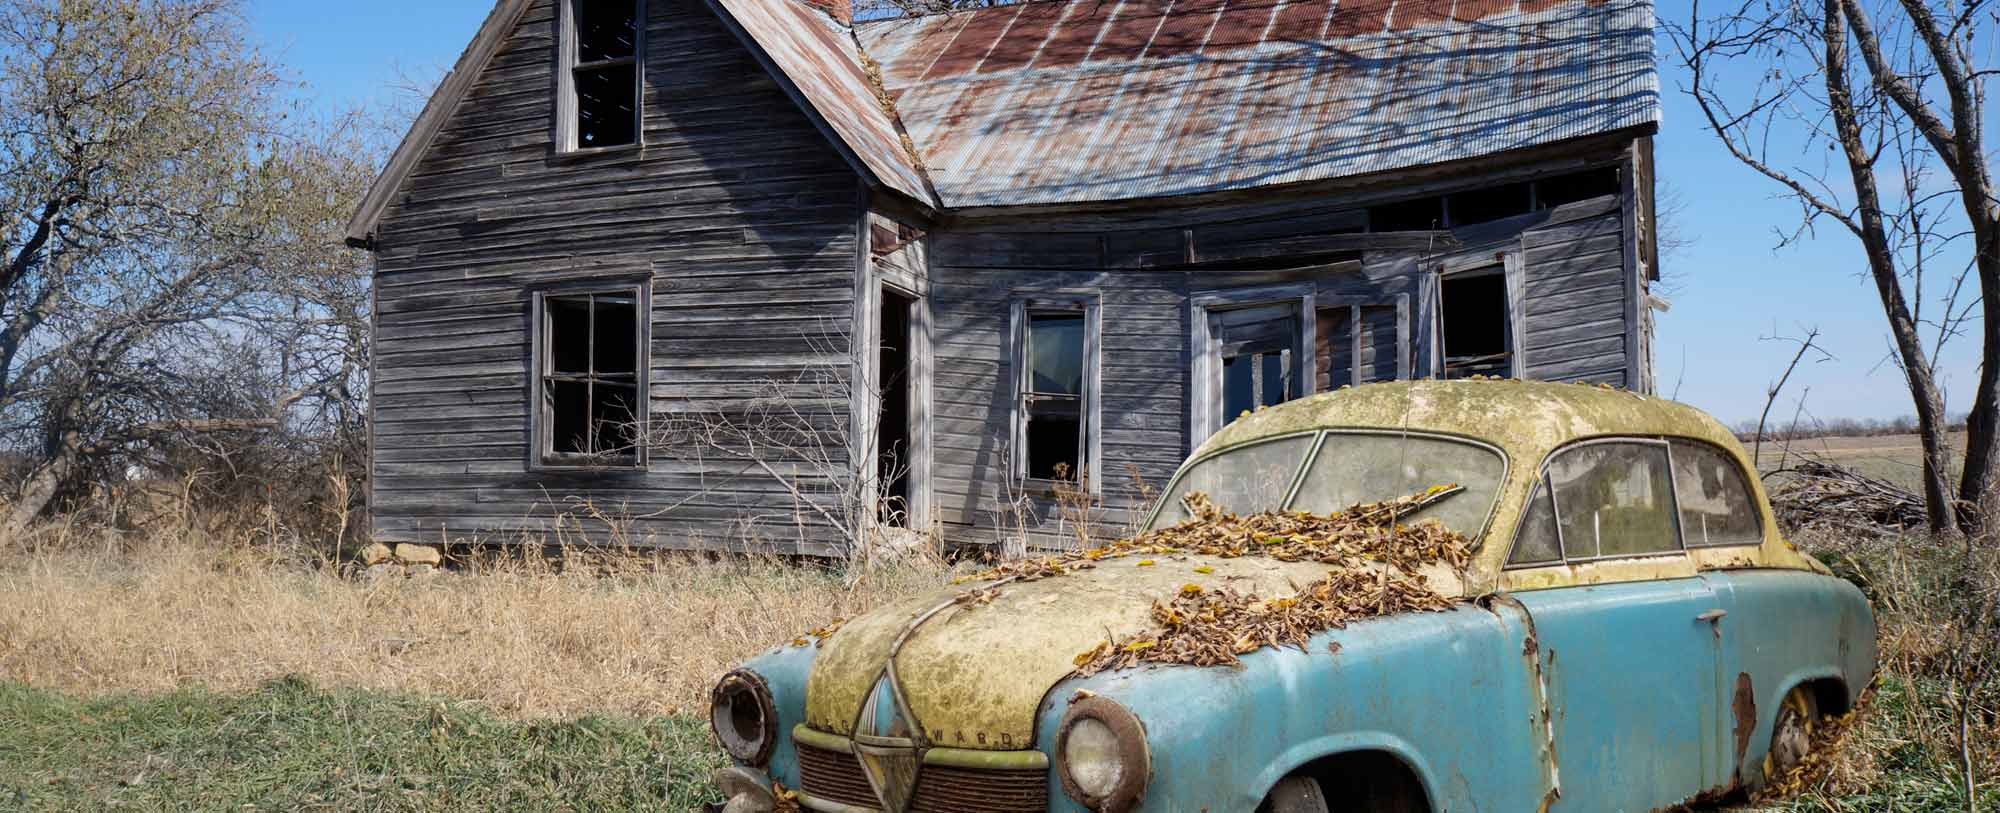 Rusted old car in the grass in front of a dilapidated house